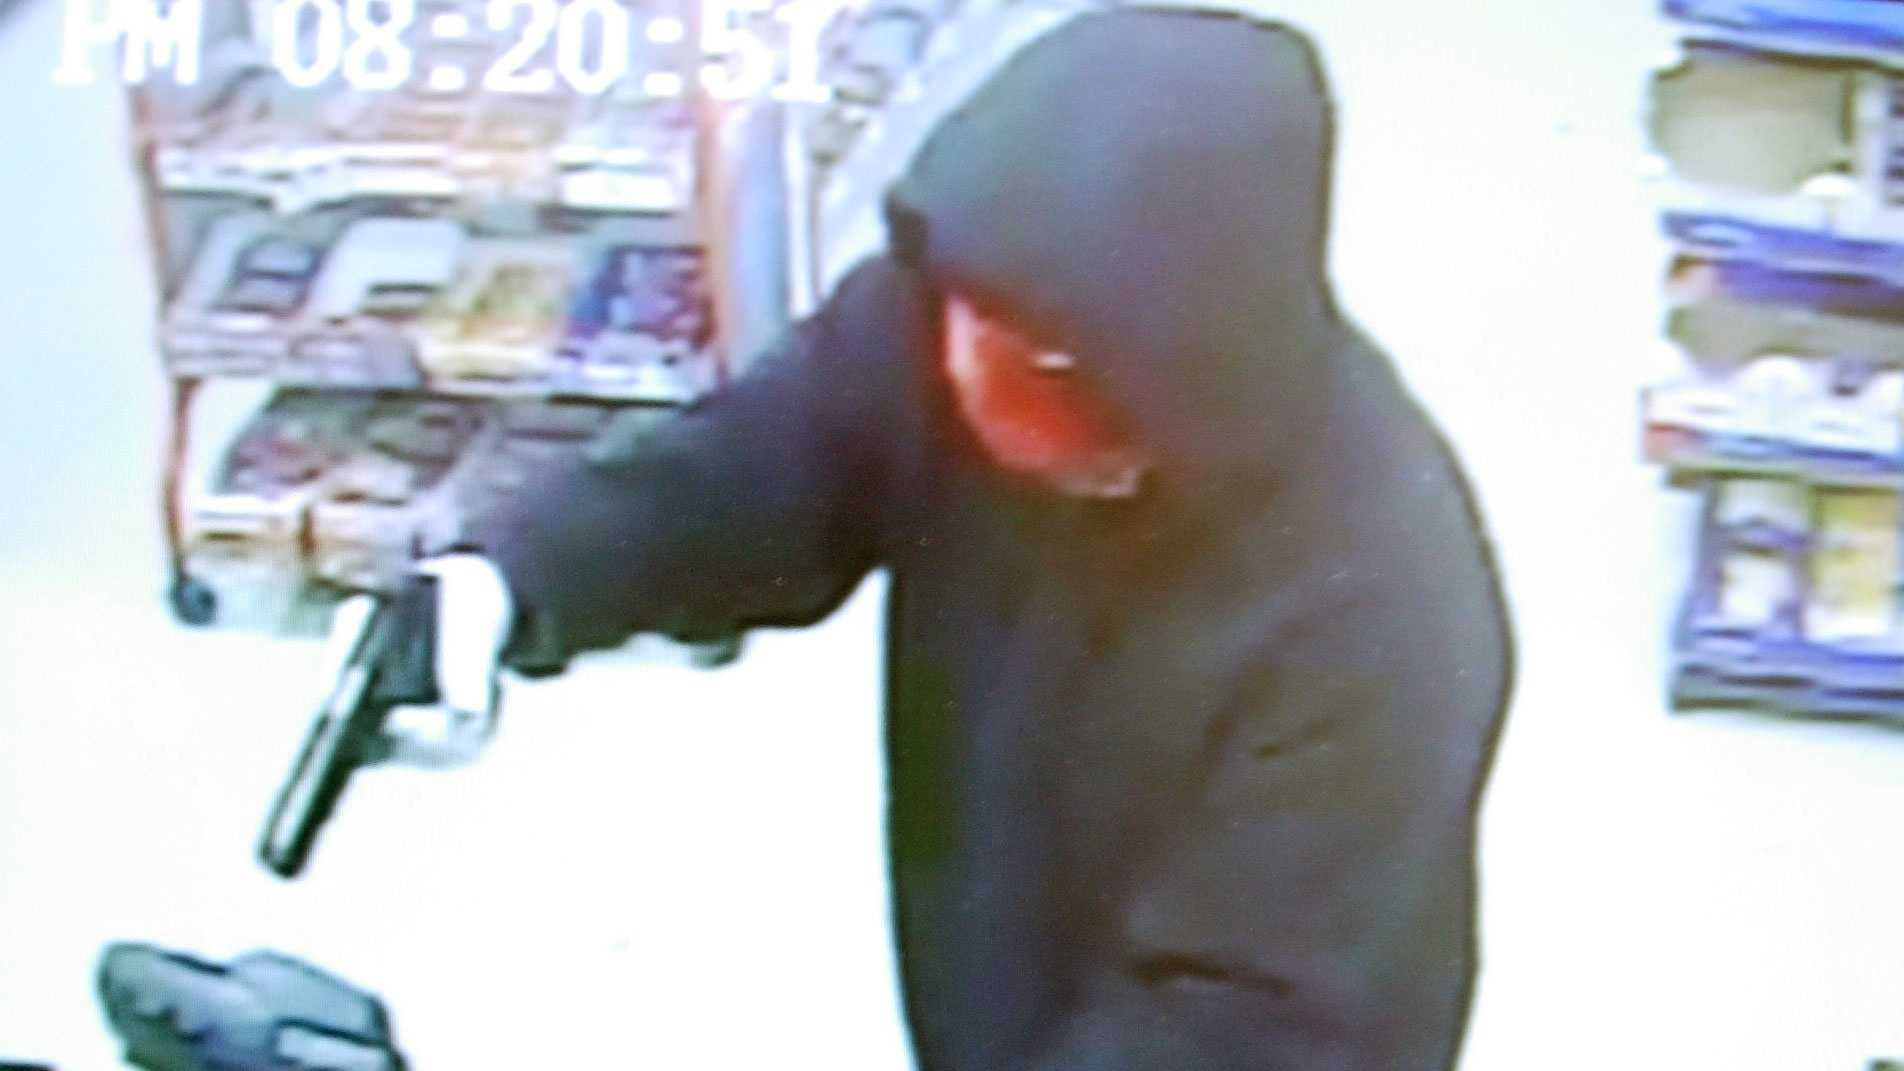 Police released this surveillance photo of the man accused in Monday night's robbery.